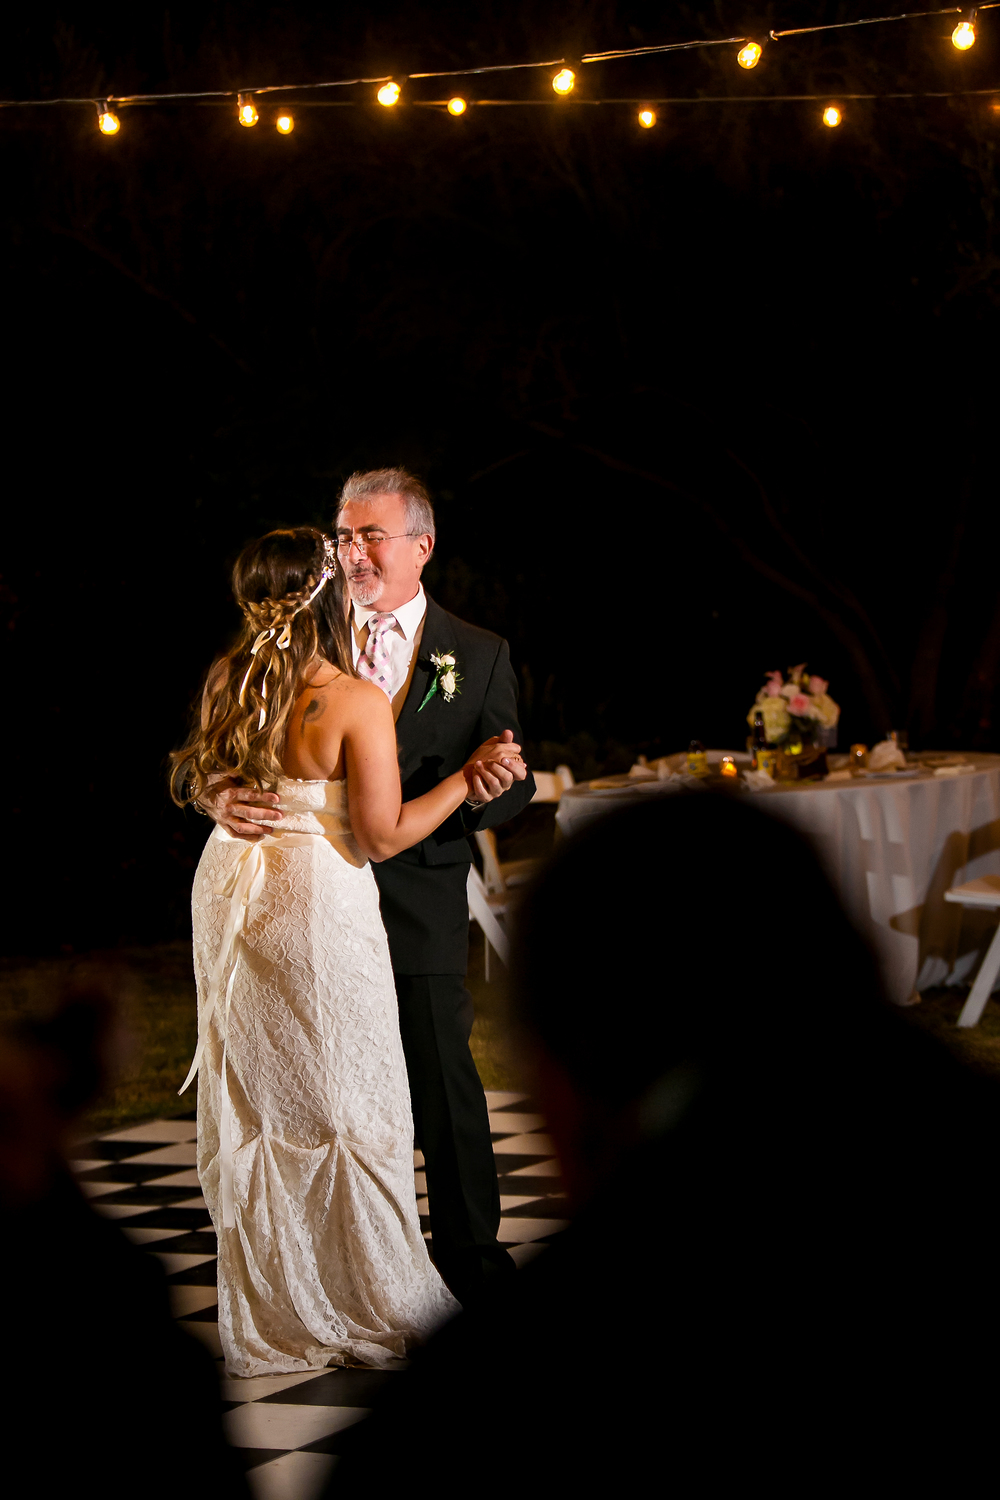 los angeles wedding photographer_ south coast botanic garden_wedding_11.jpg